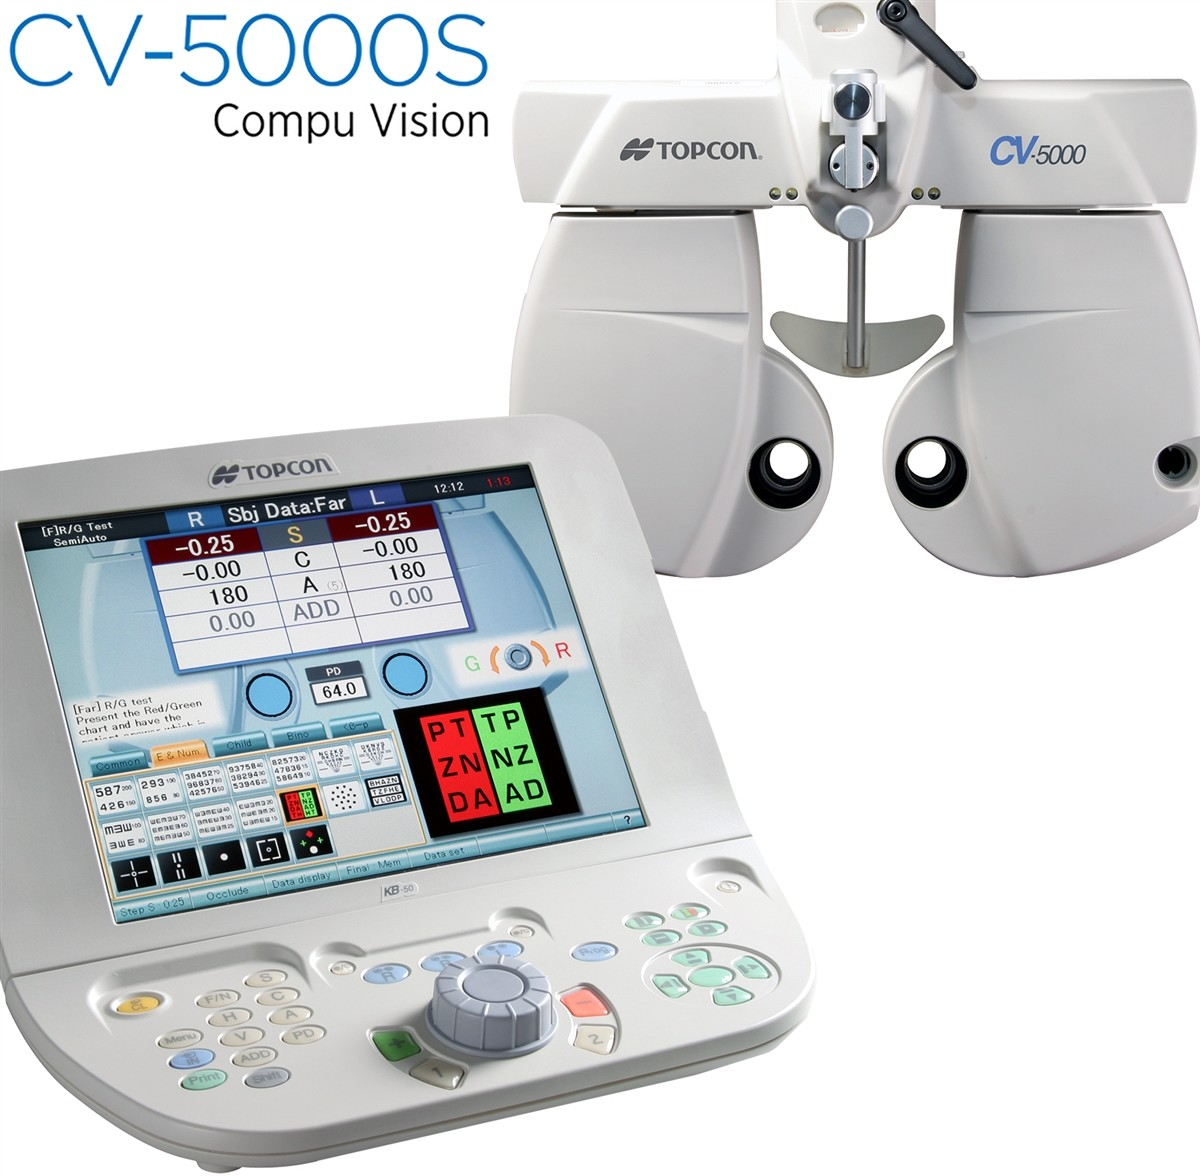 Advanced Technology CV-5000S Autophoropter eye exam